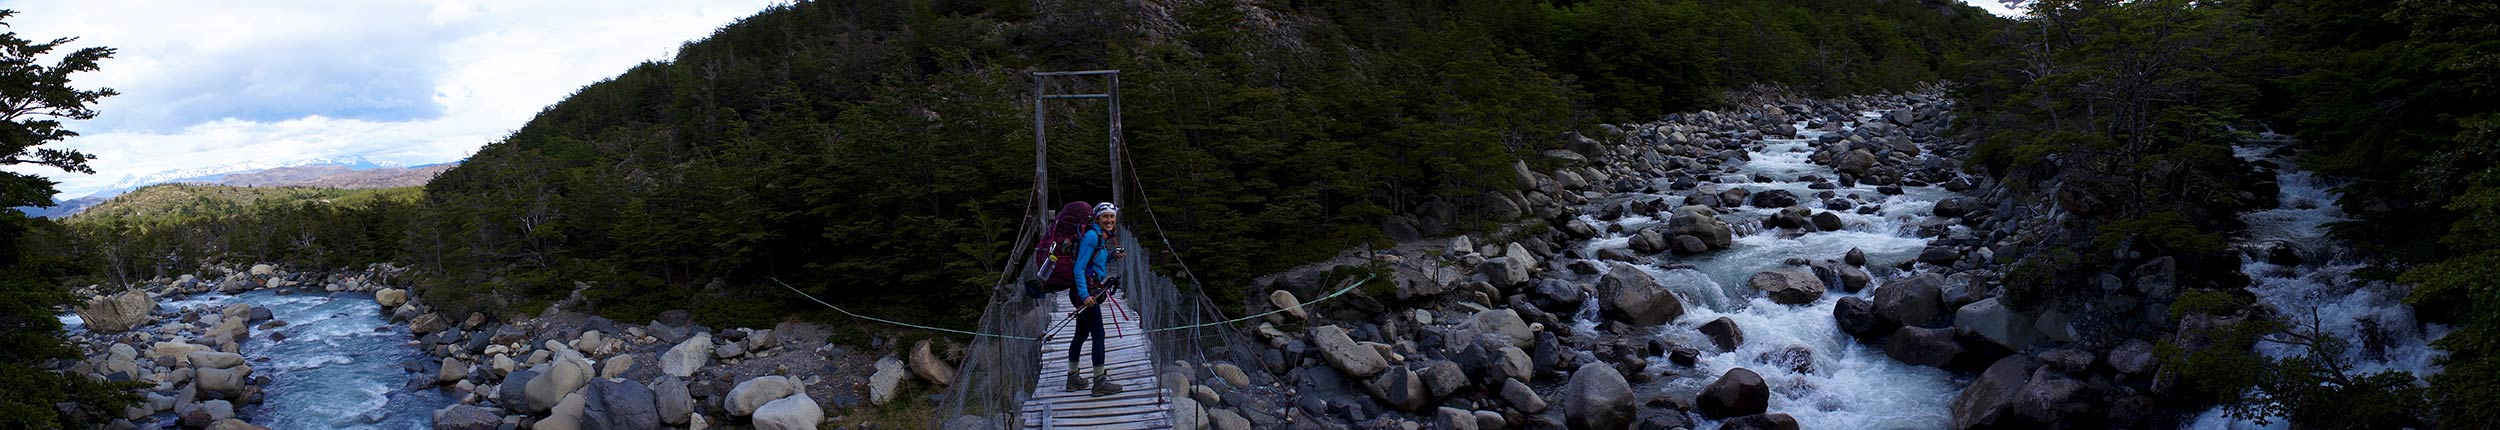 torres_del_paine_w_trek_candice_bridge.jpg